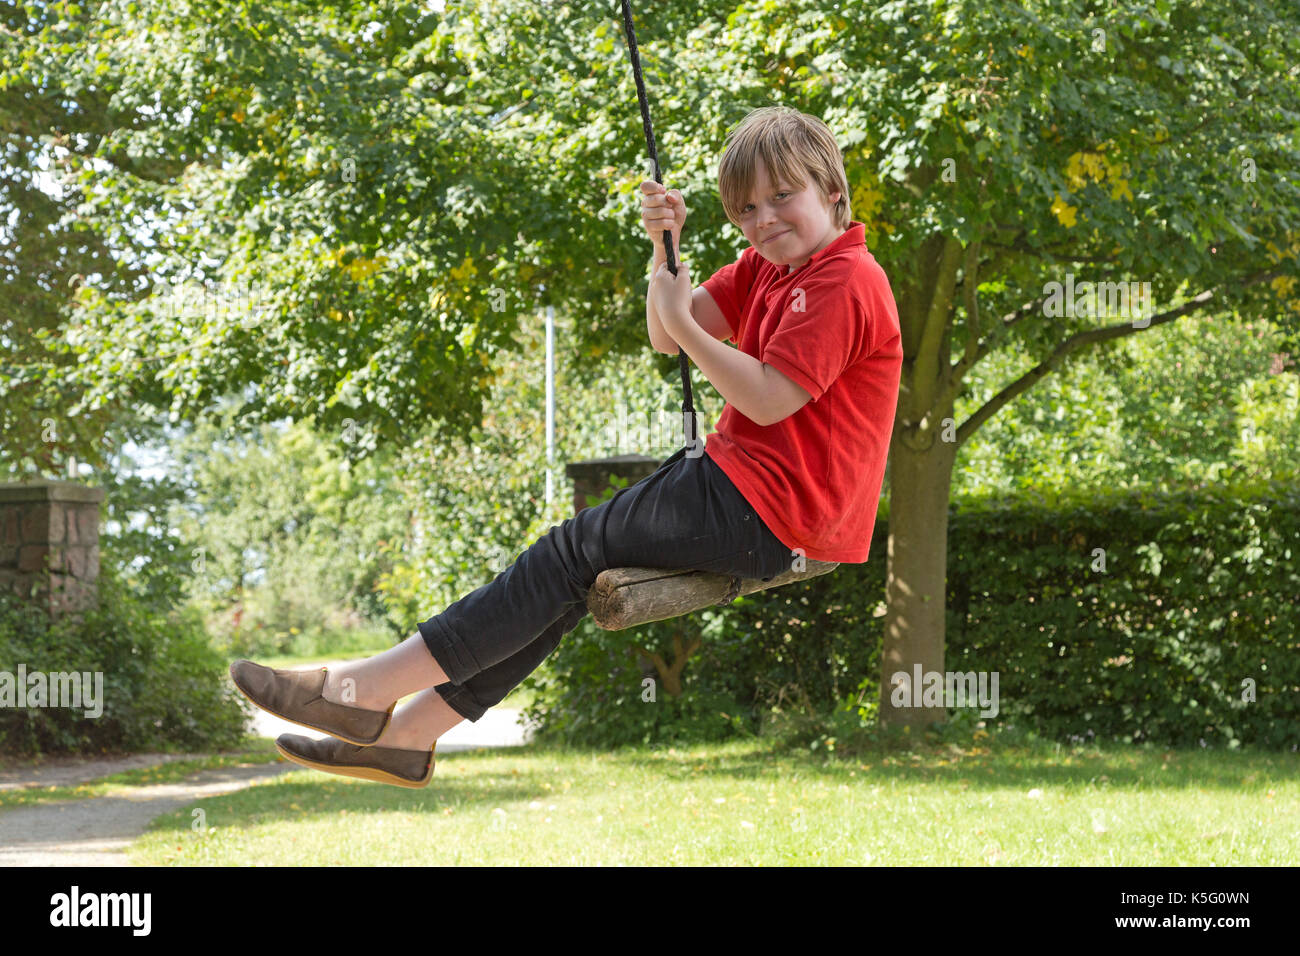 young boy swinging on a rope - Stock Image